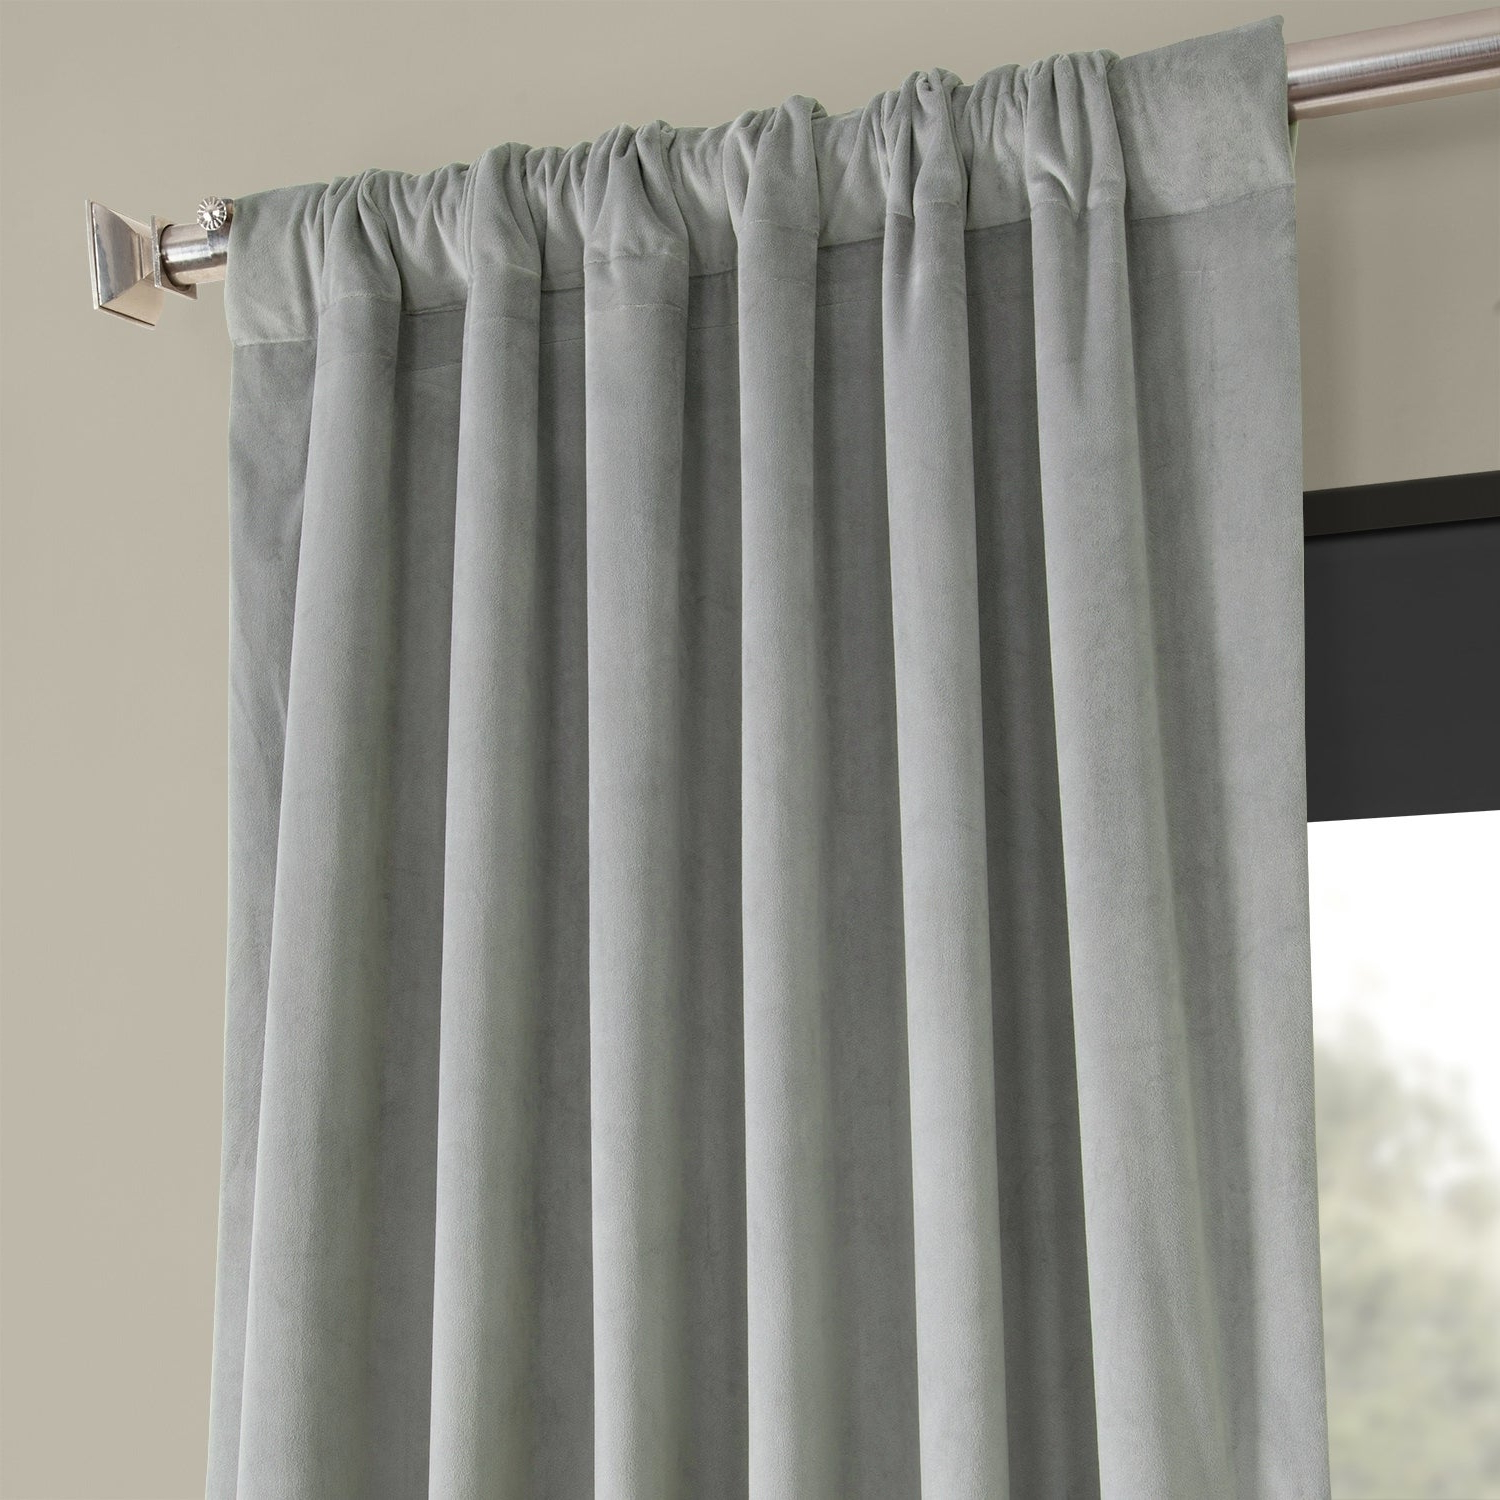 Best And Newest Velvet Dream Silver Curtain Panel Pairs Within Exclusive Fabrics Signature Silver Grey Velvet Blackout Curtain Panel (View 6 of 20)